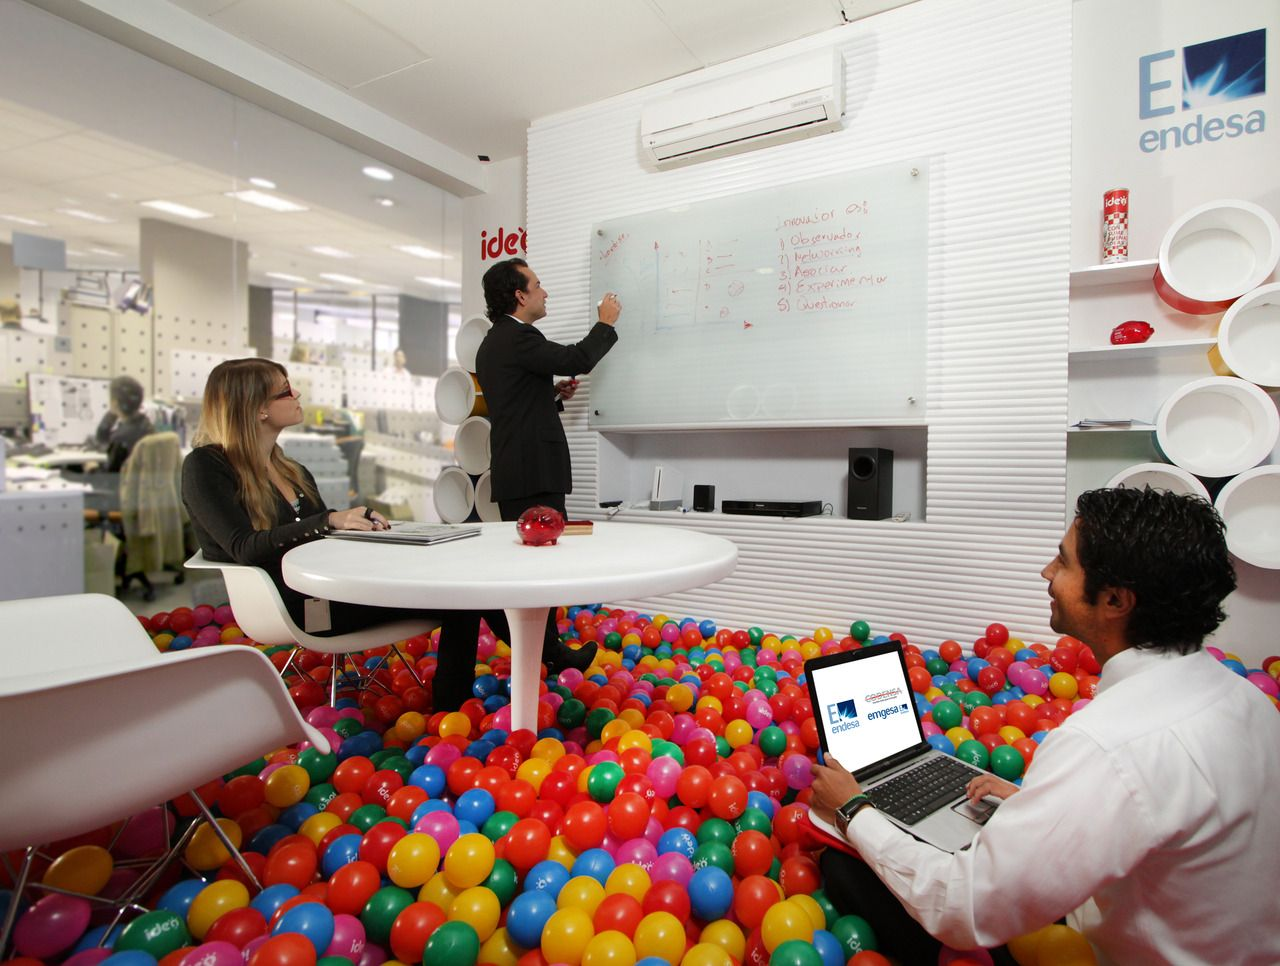 Ball pit office